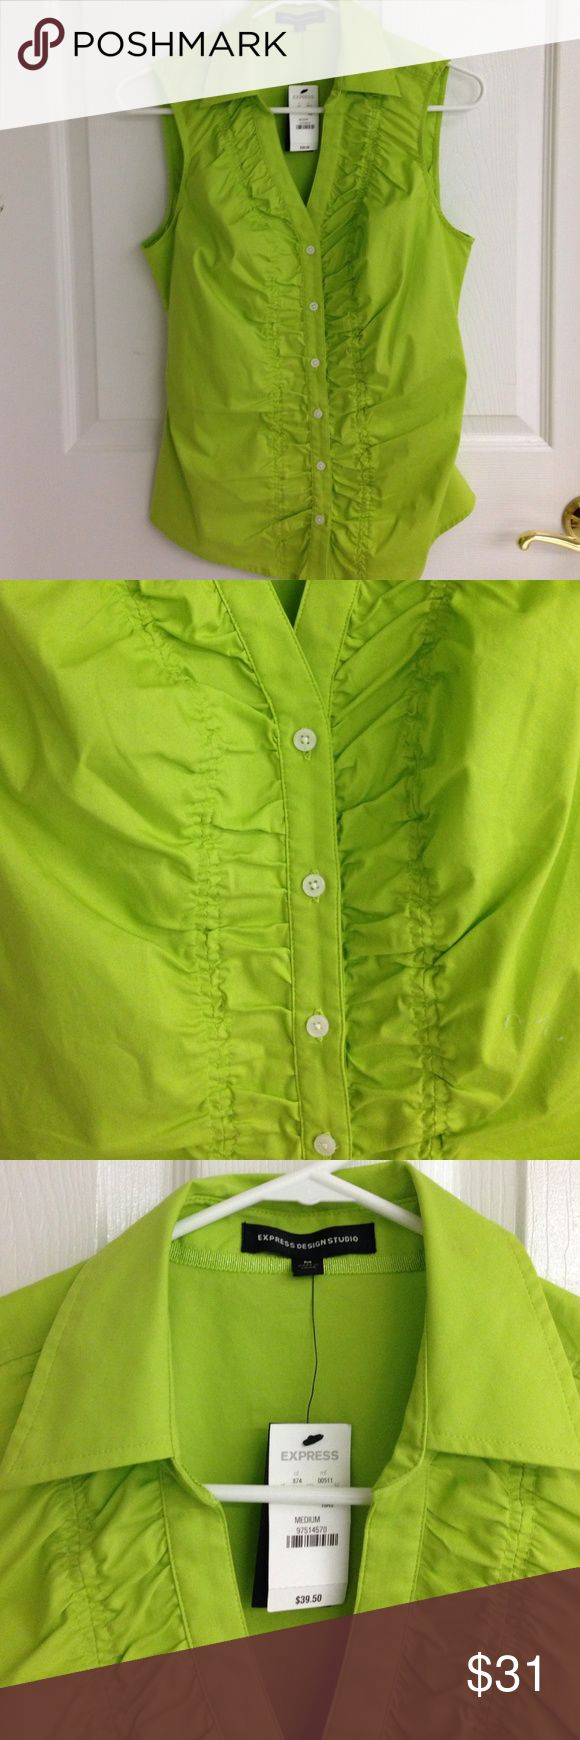 EXPRESS Design Studio Sleeveless Blouse Express Design Studio sleeveless lime green blouse. Puckering/Ruching effect in front. Size M 60% cotton 35% polyester 5% spandex NWT never worn Express Tops Blouses